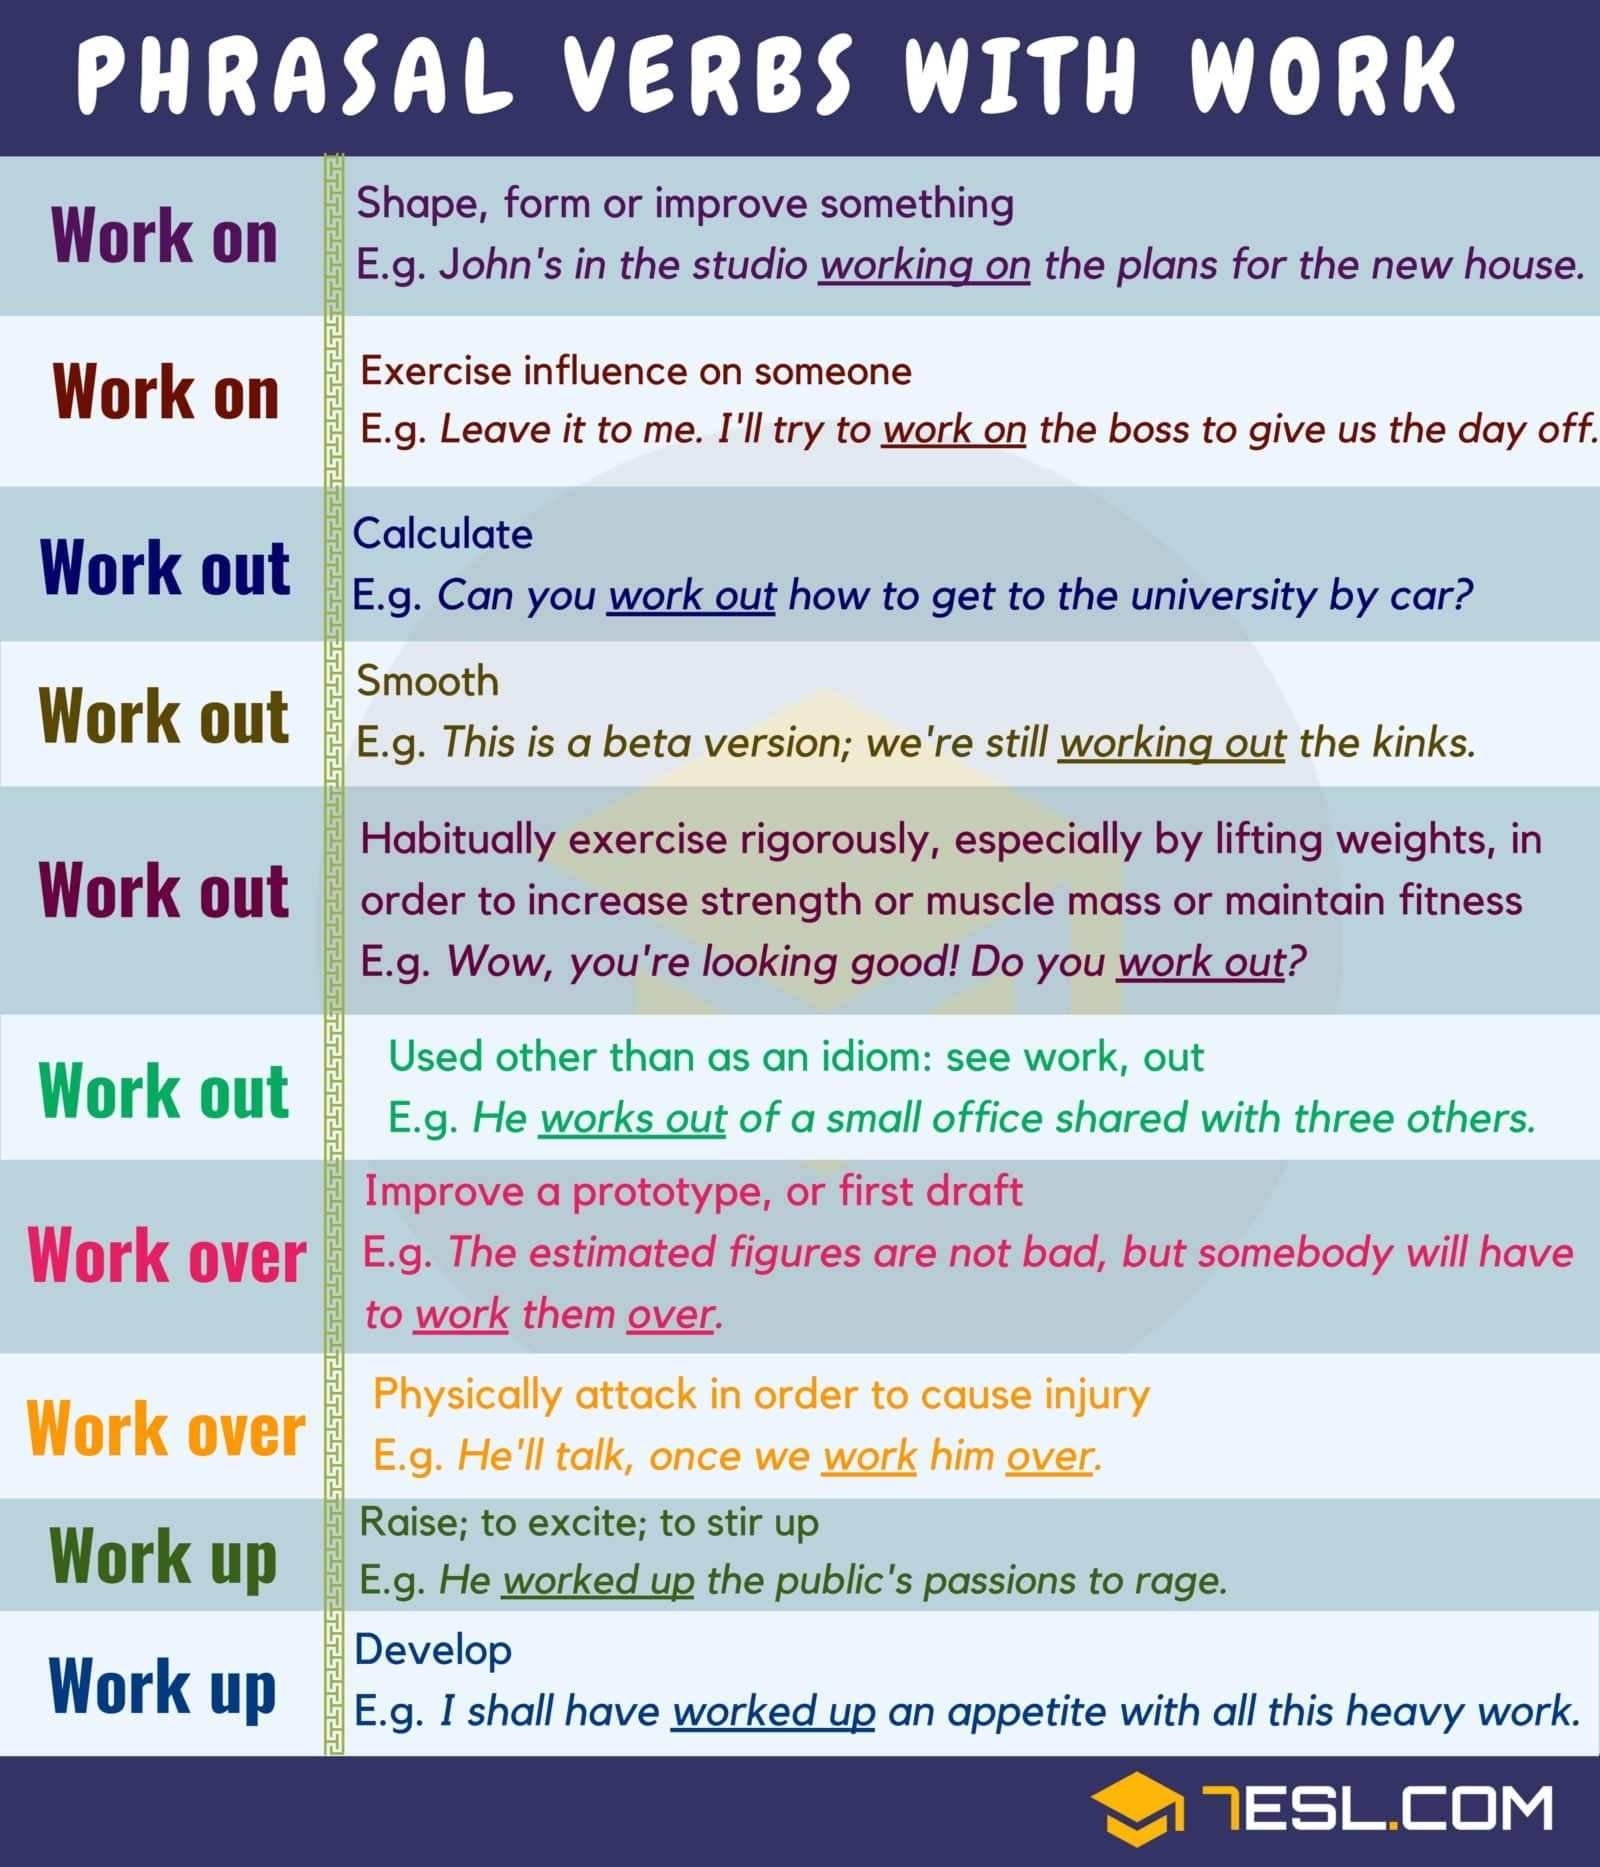 Common English Phrasal Verbs With Work You Should Know